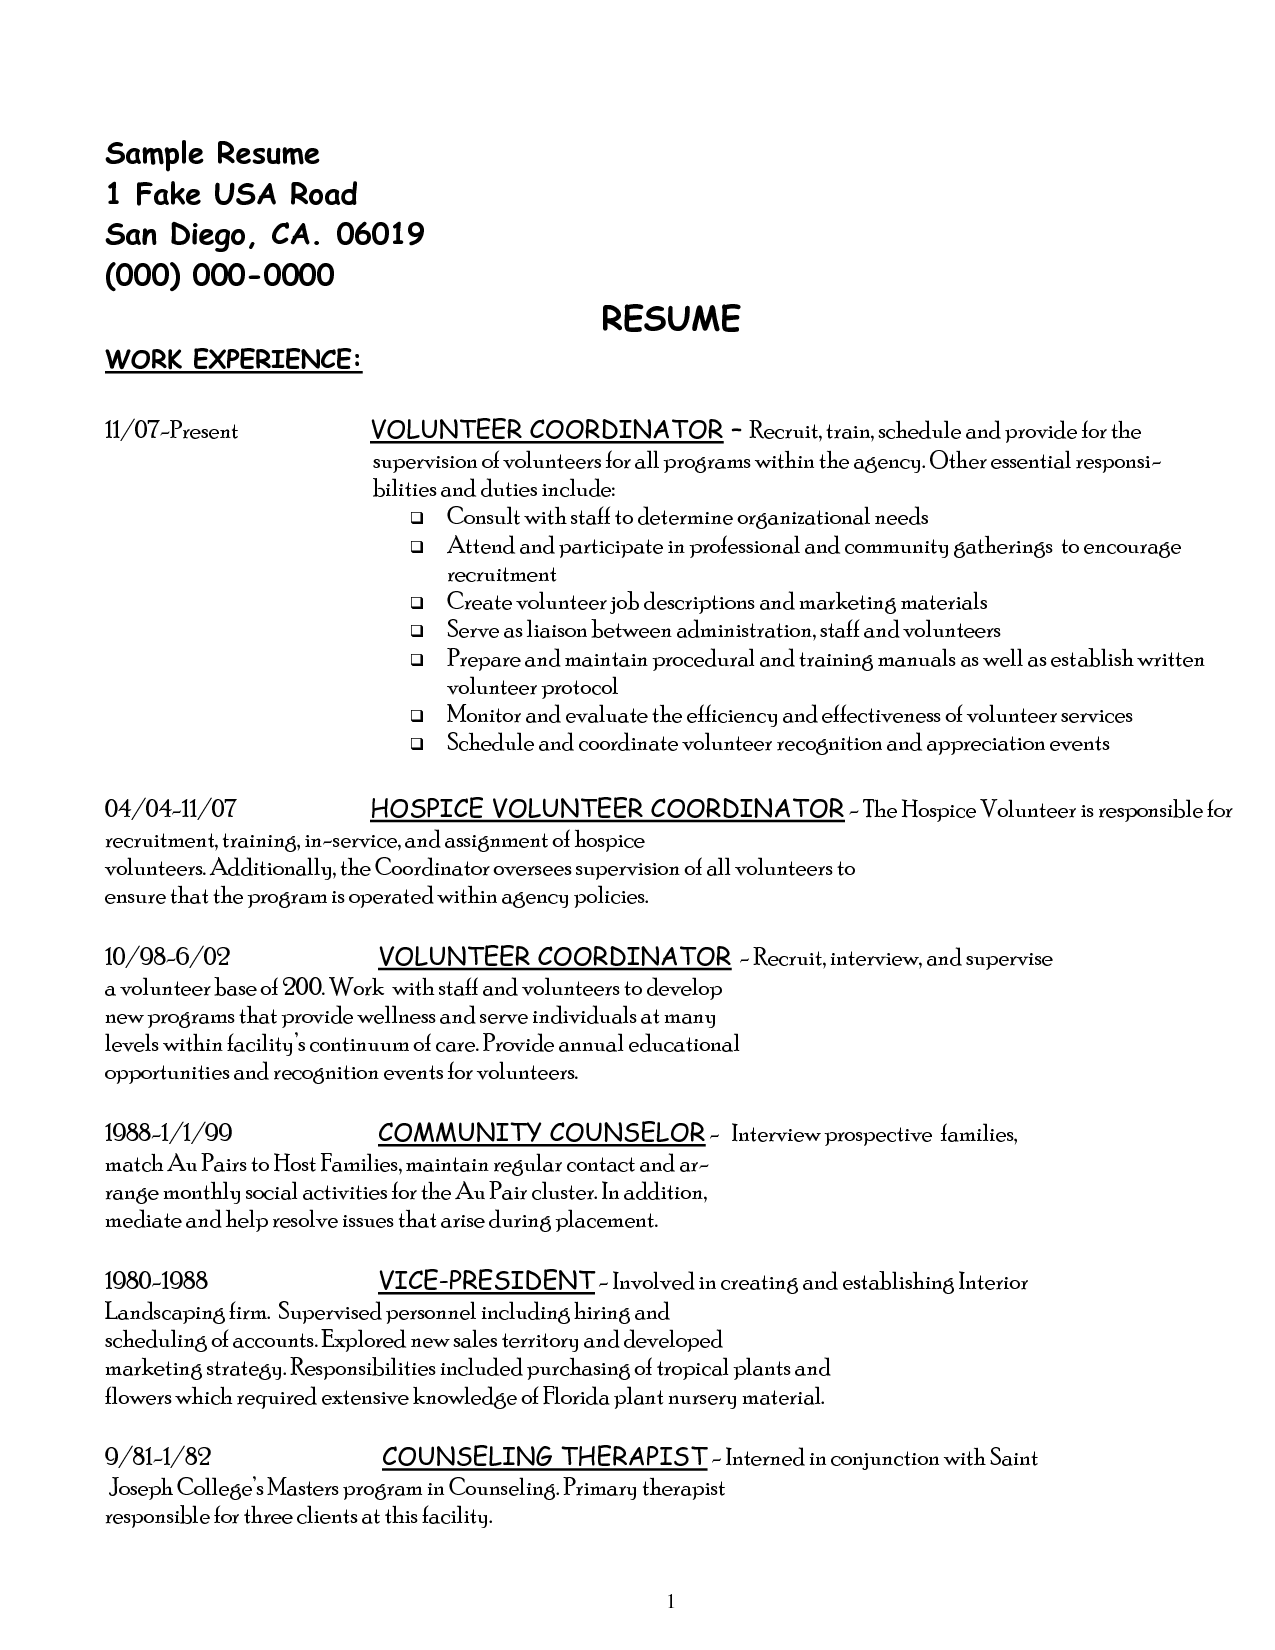 resume Where Do I Put Volunteer Work On My Resume volunteer work on resume example imagesvolunteer business letter sample